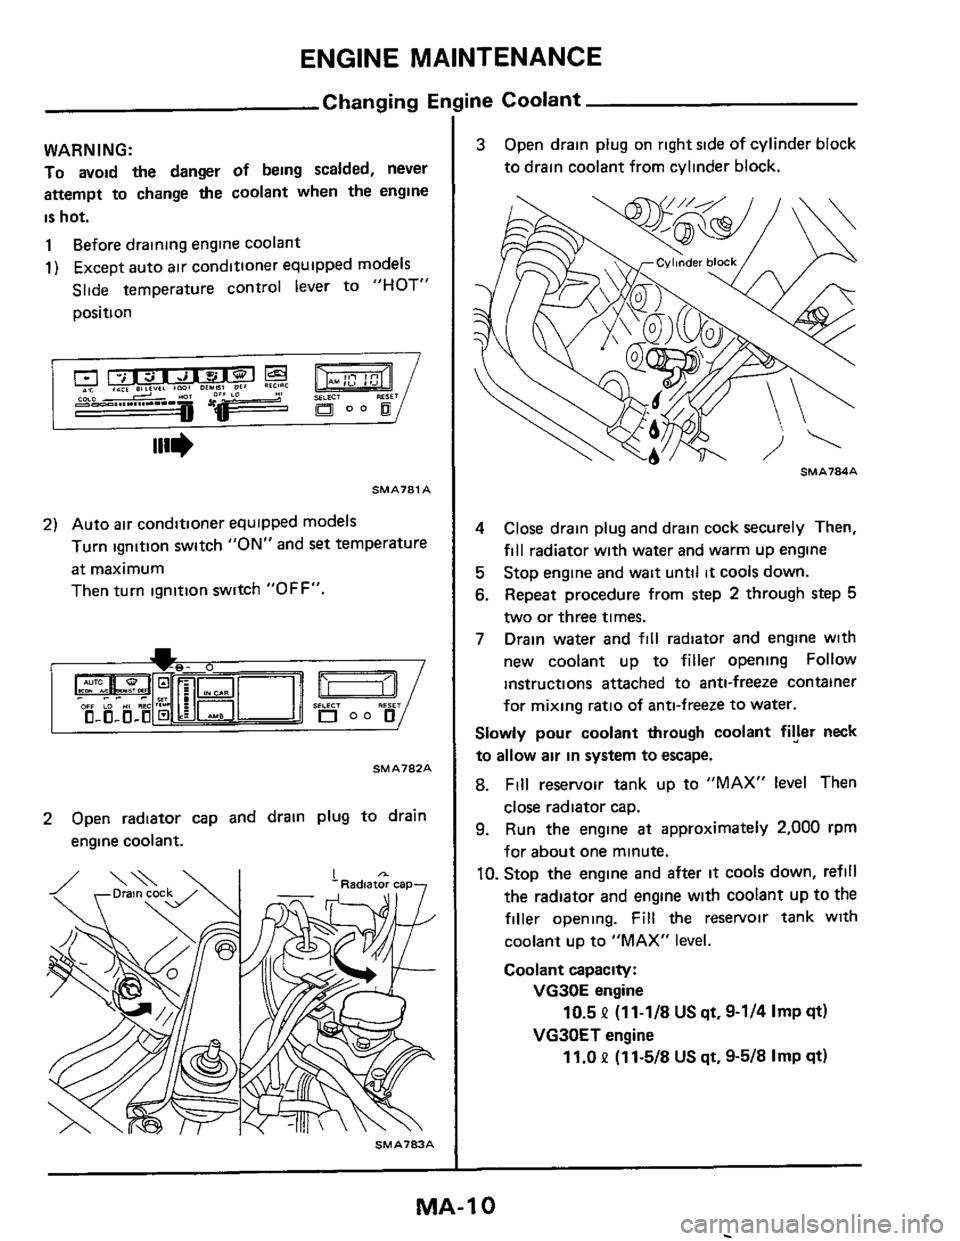 NISSAN 300ZX 1984 Z31 Maintenance Workshop Manual, Page 10